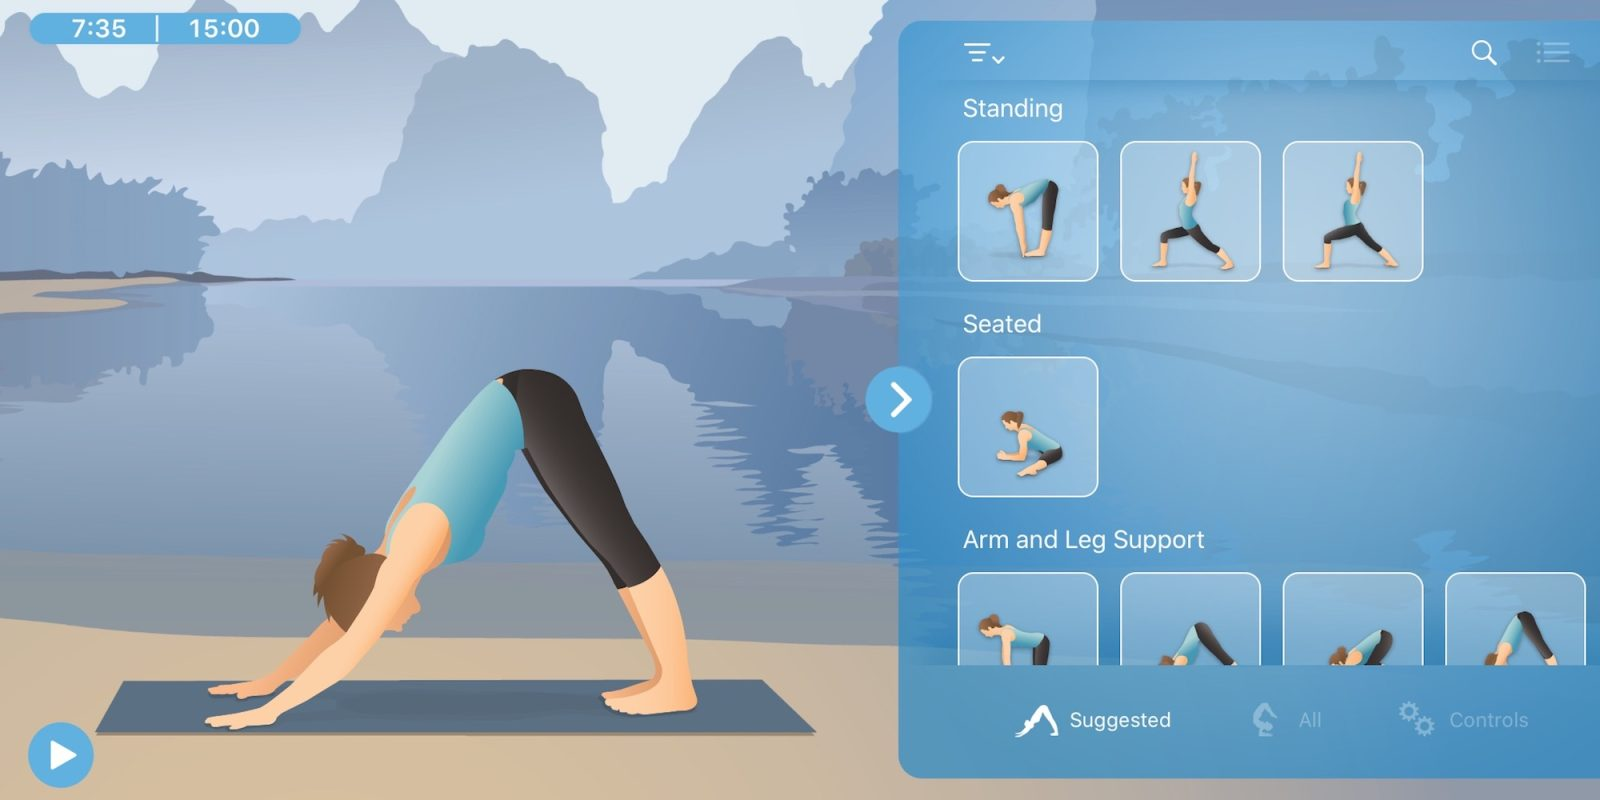 Hire a personal Pocket Yoga Teacher on iOS or Mac for FREE today (Reg. $10)